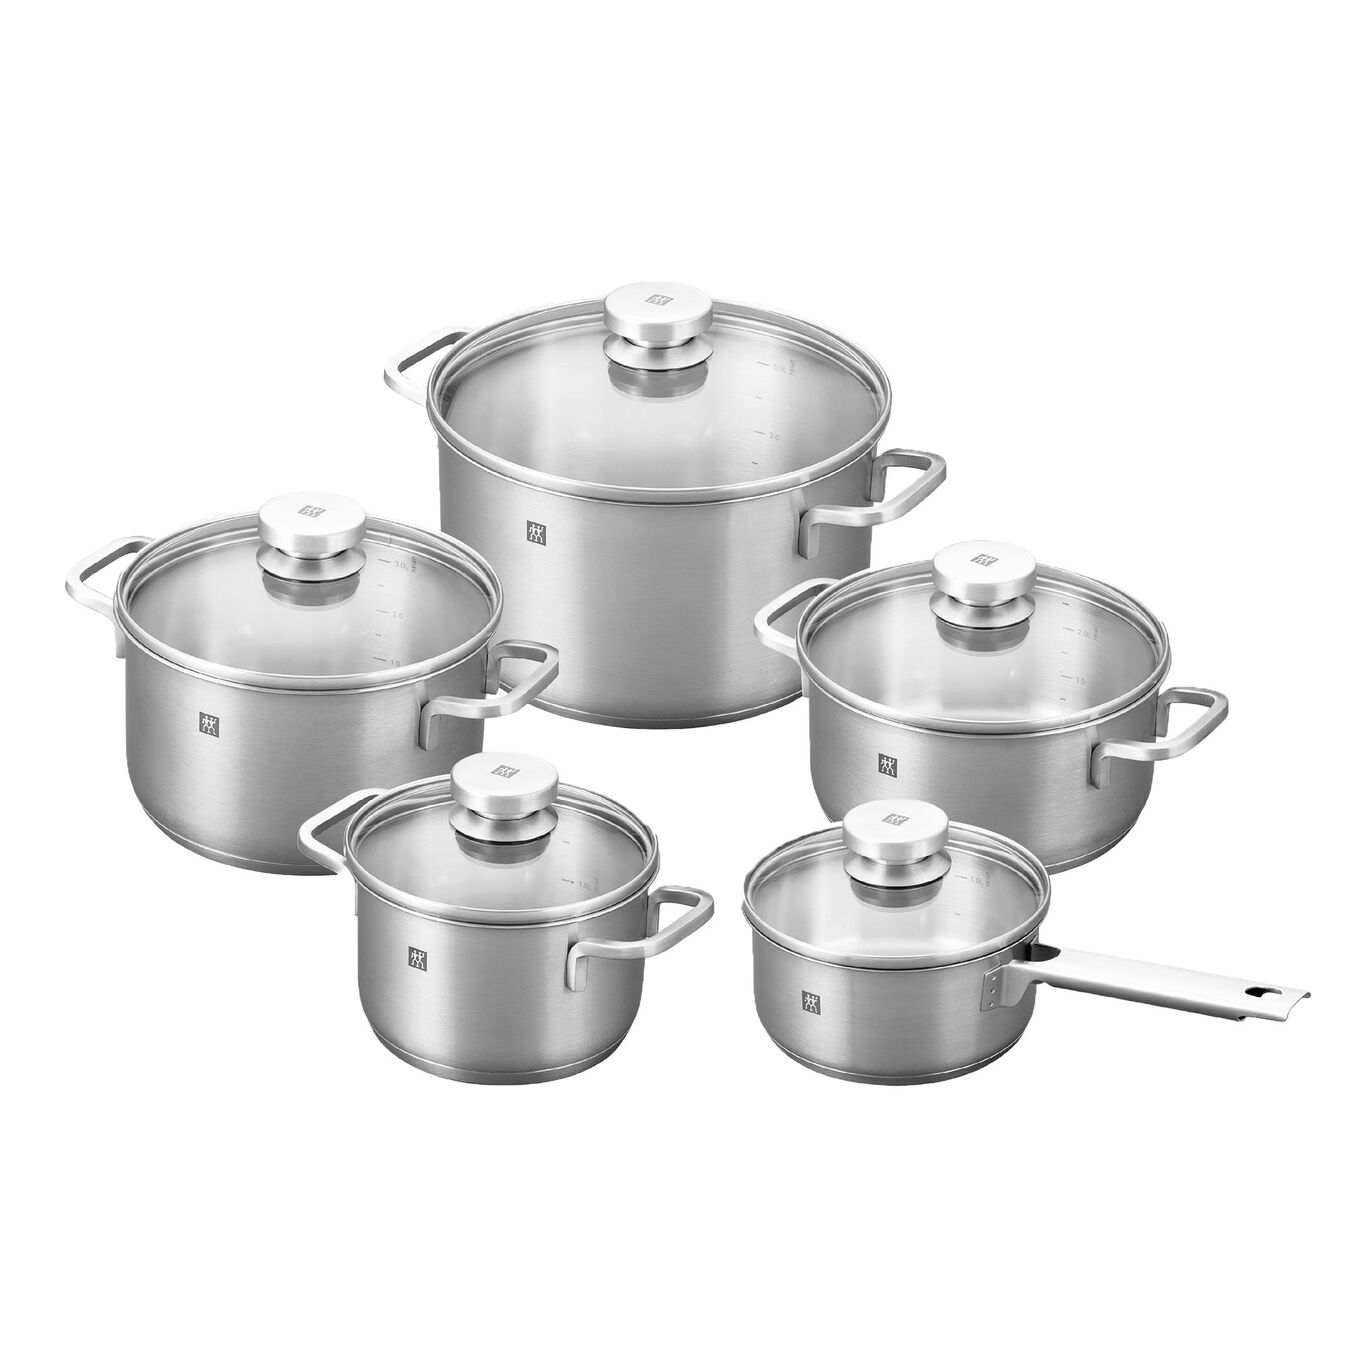 18/10 Stainless Steel Cookware Set, 10 Piece | round | 18/10 Stainless Steel,,large 1